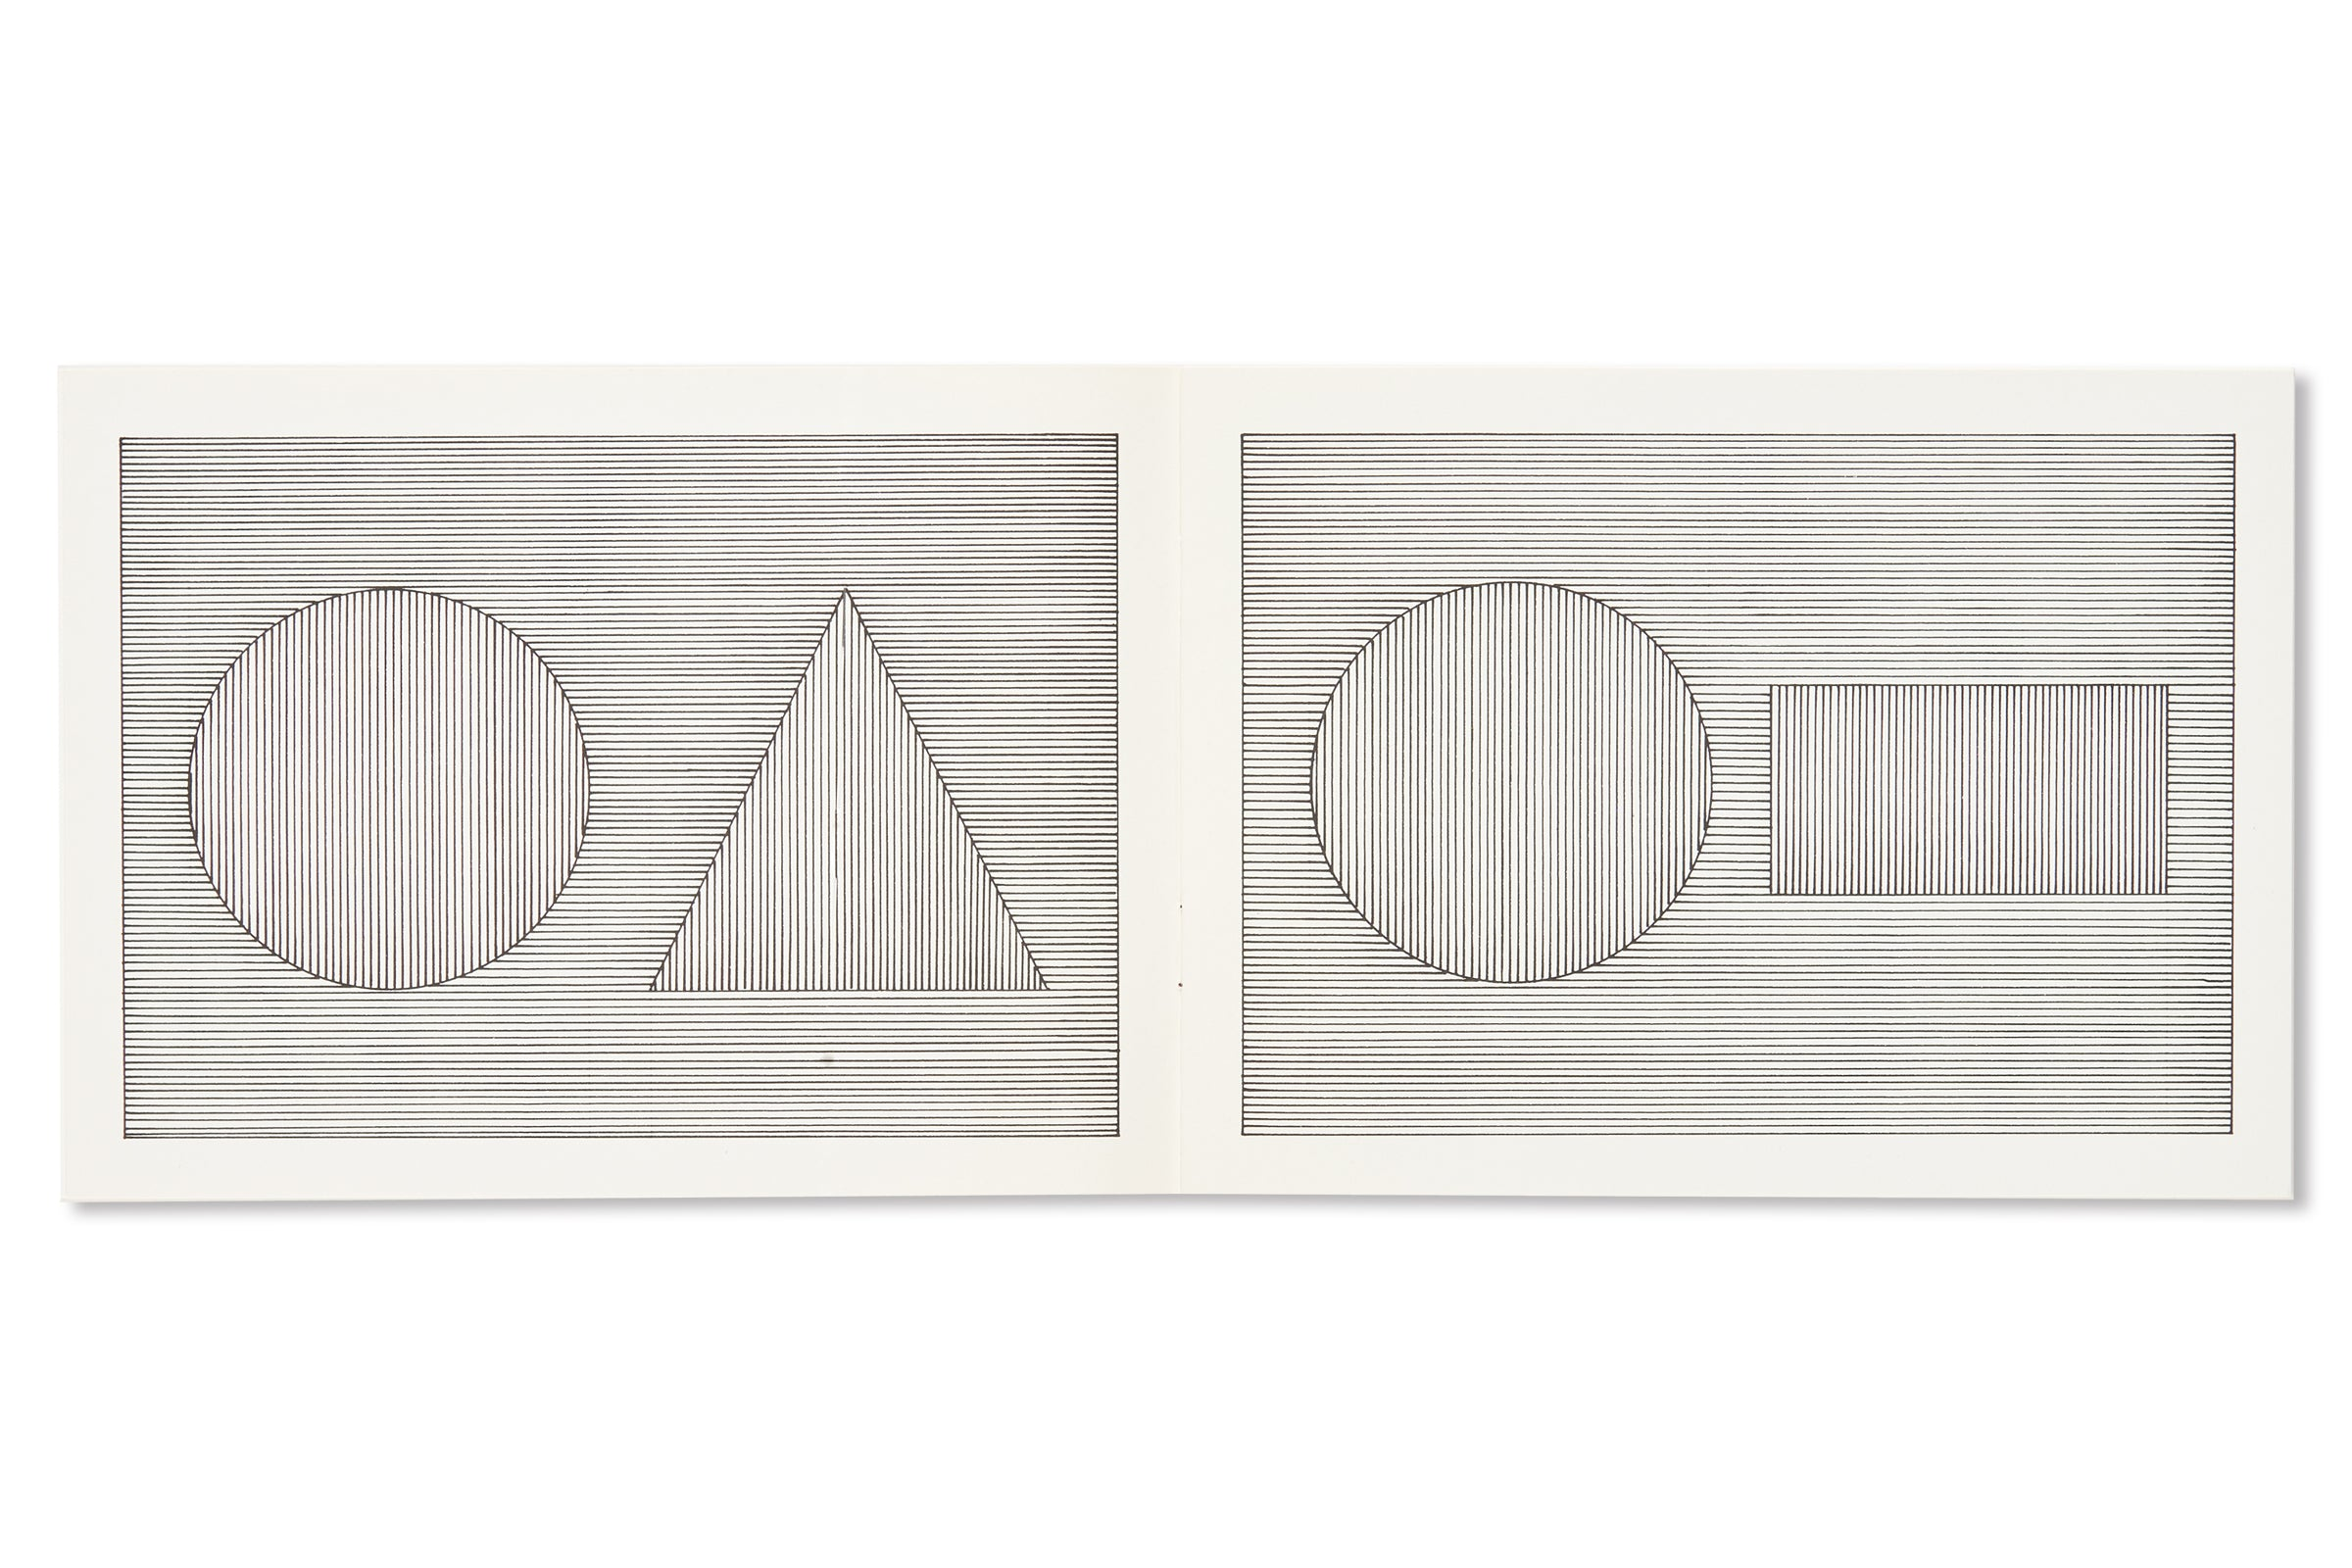 SIX GEOMETRIC FIGURES AND ALL THEIR DOUBLE COMBINATIONS by Sol LeWitt